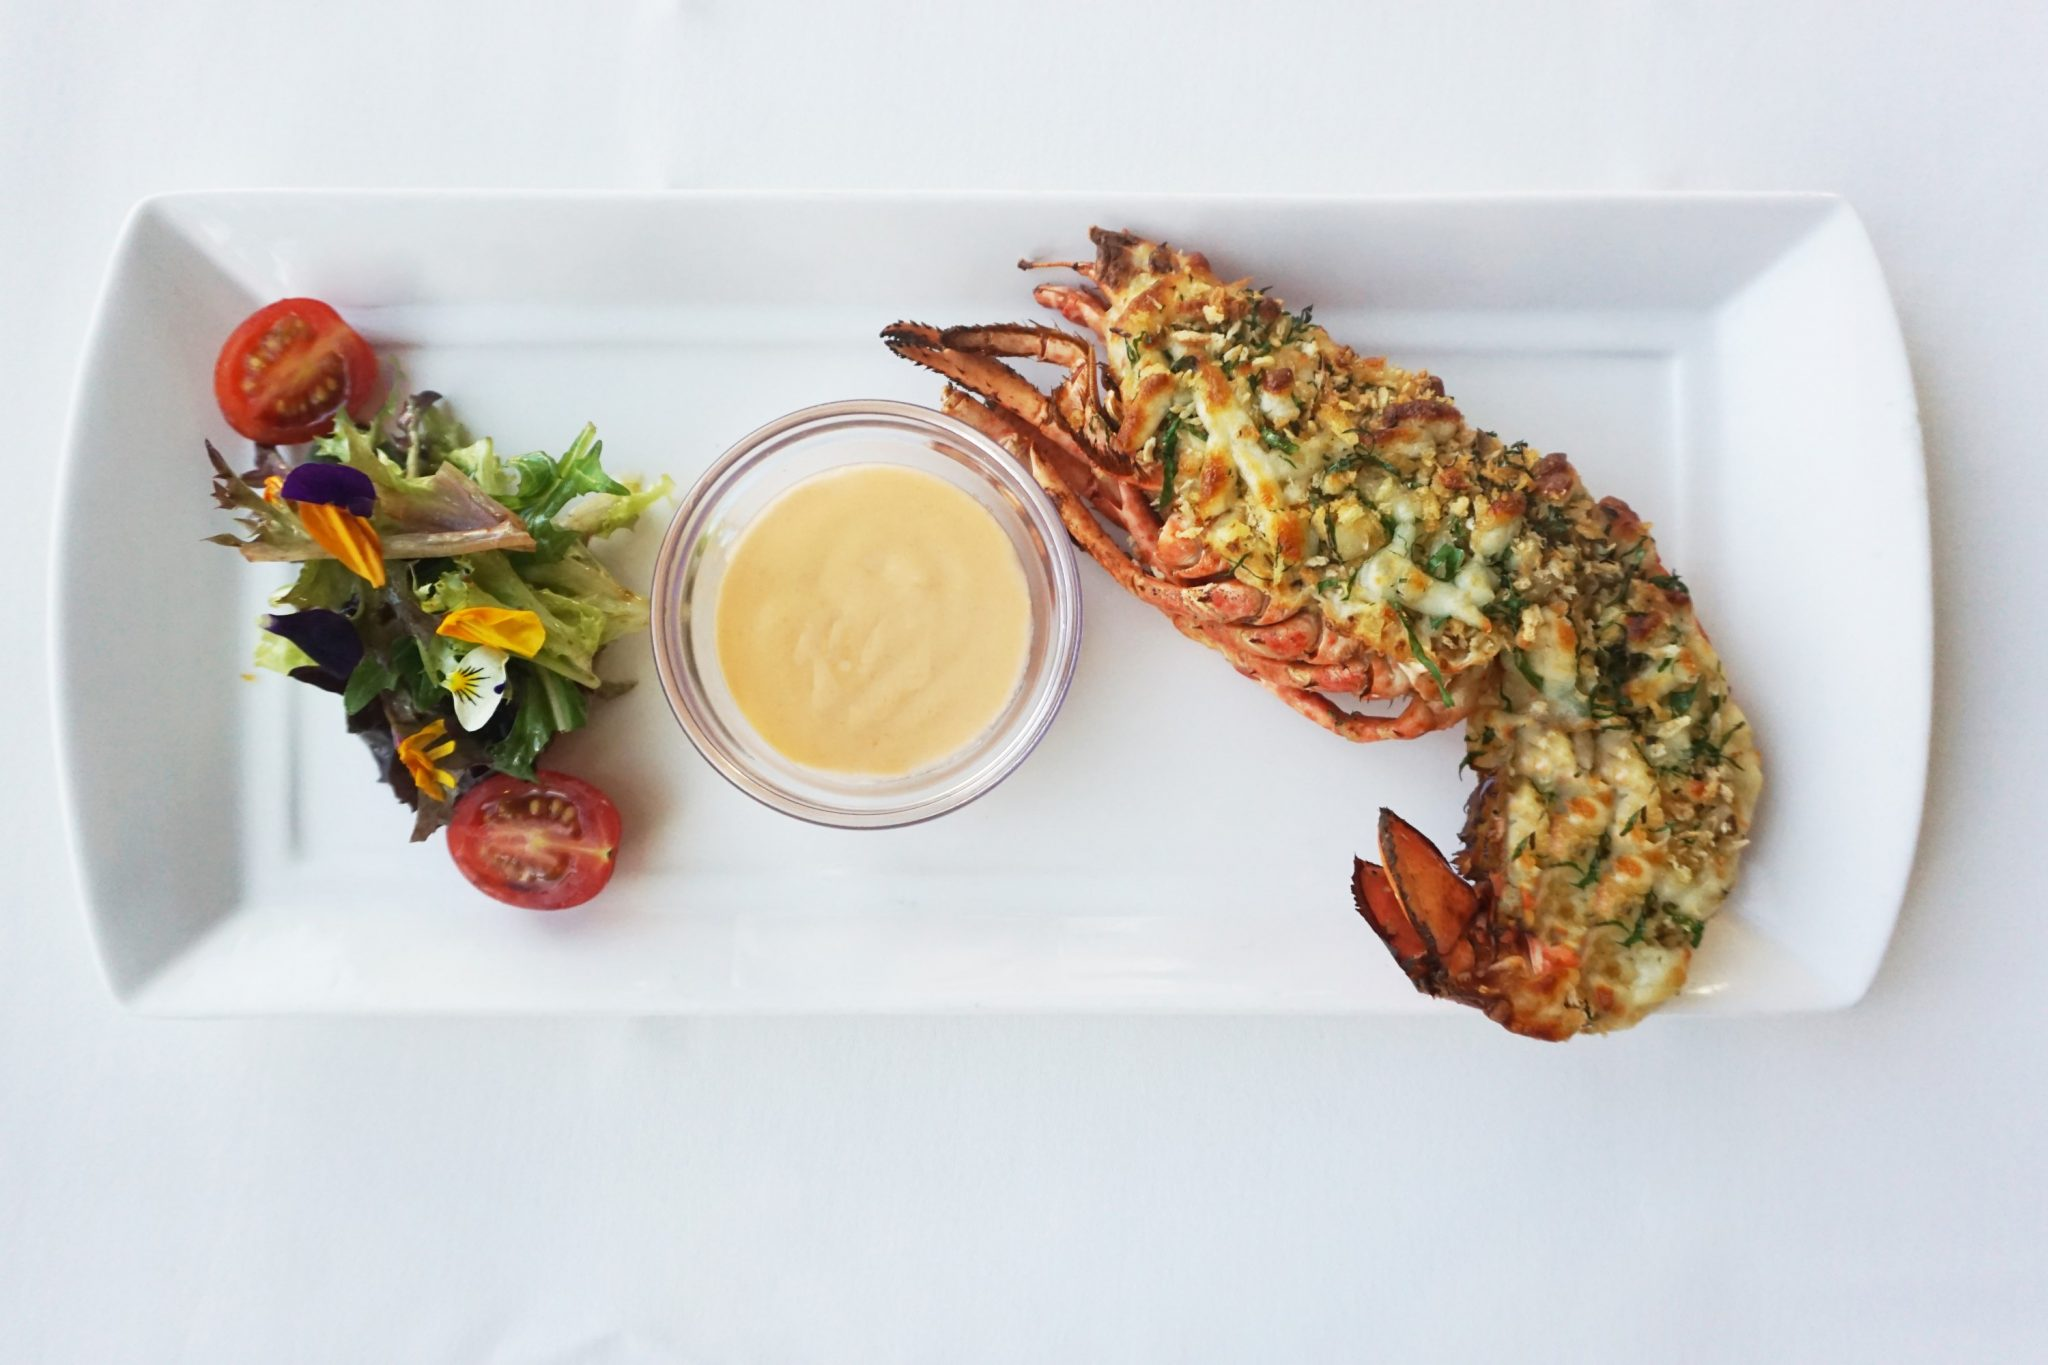 Lawry's Lobster Thermidor stuffed with Carrots and Mushrooms